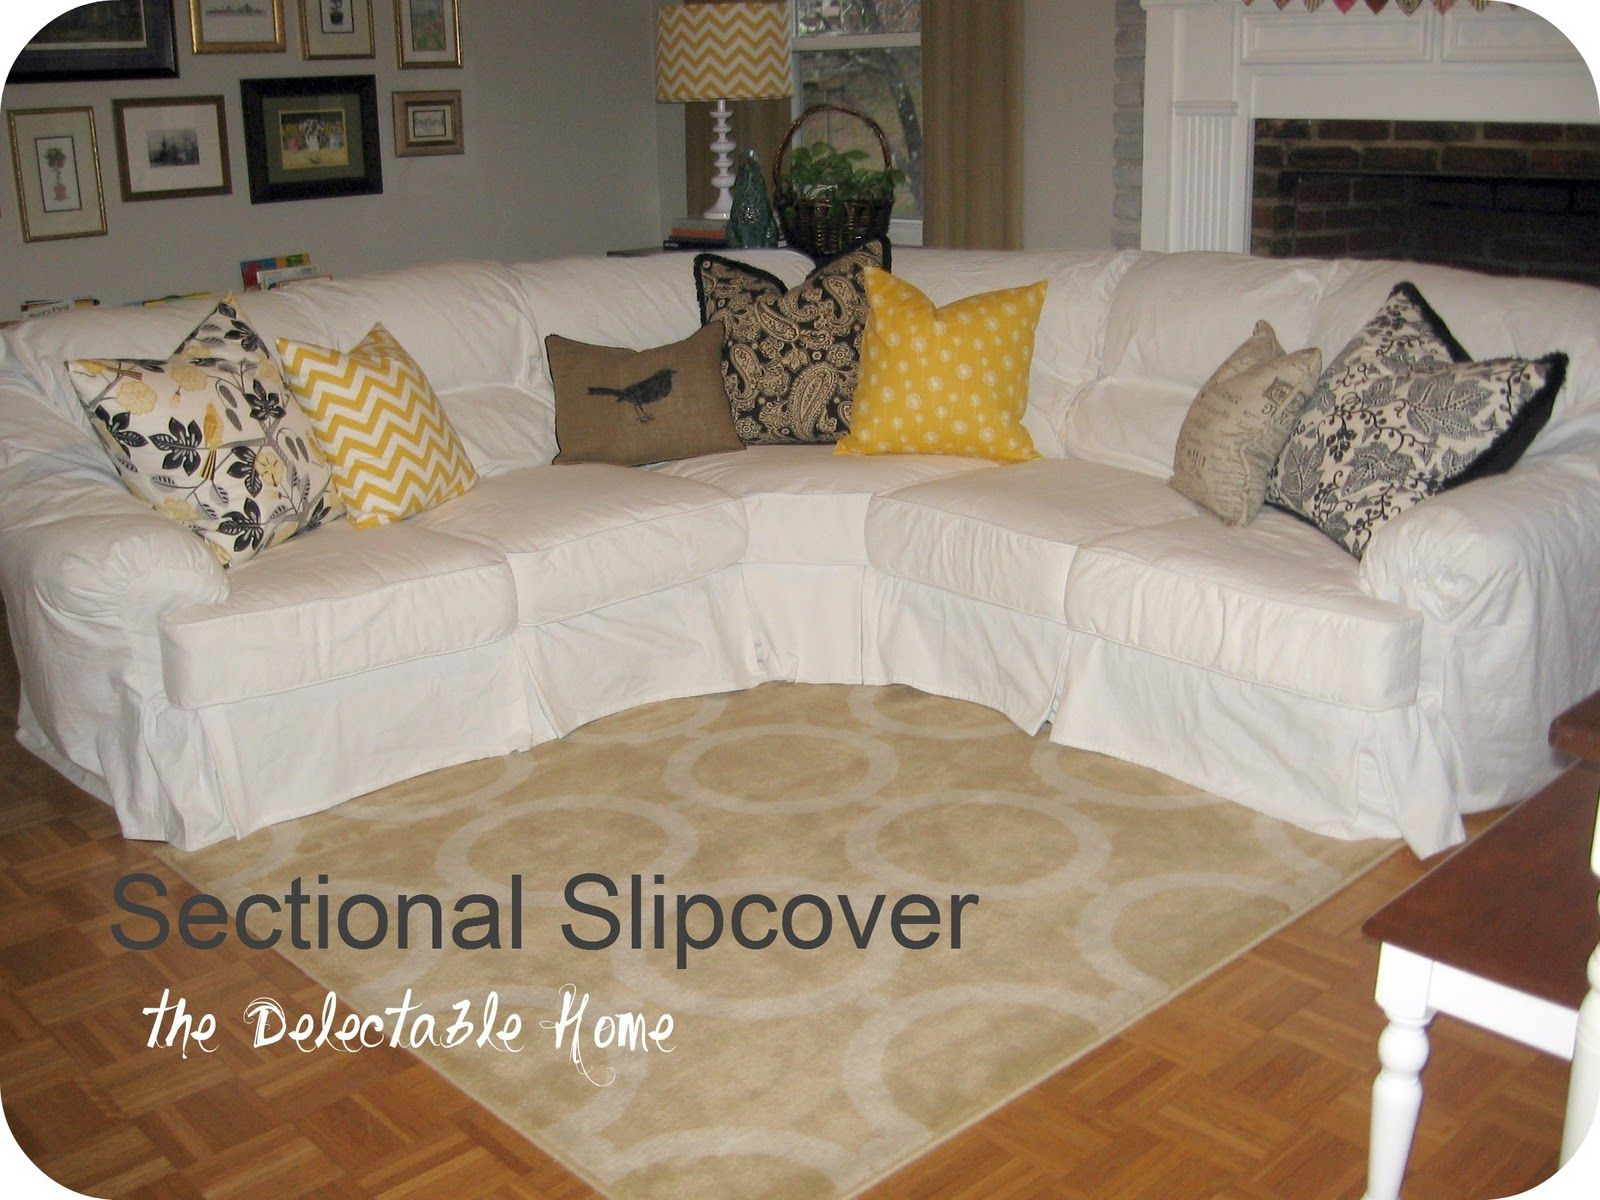 The Delectable Home Impossible Sectional Slipcover